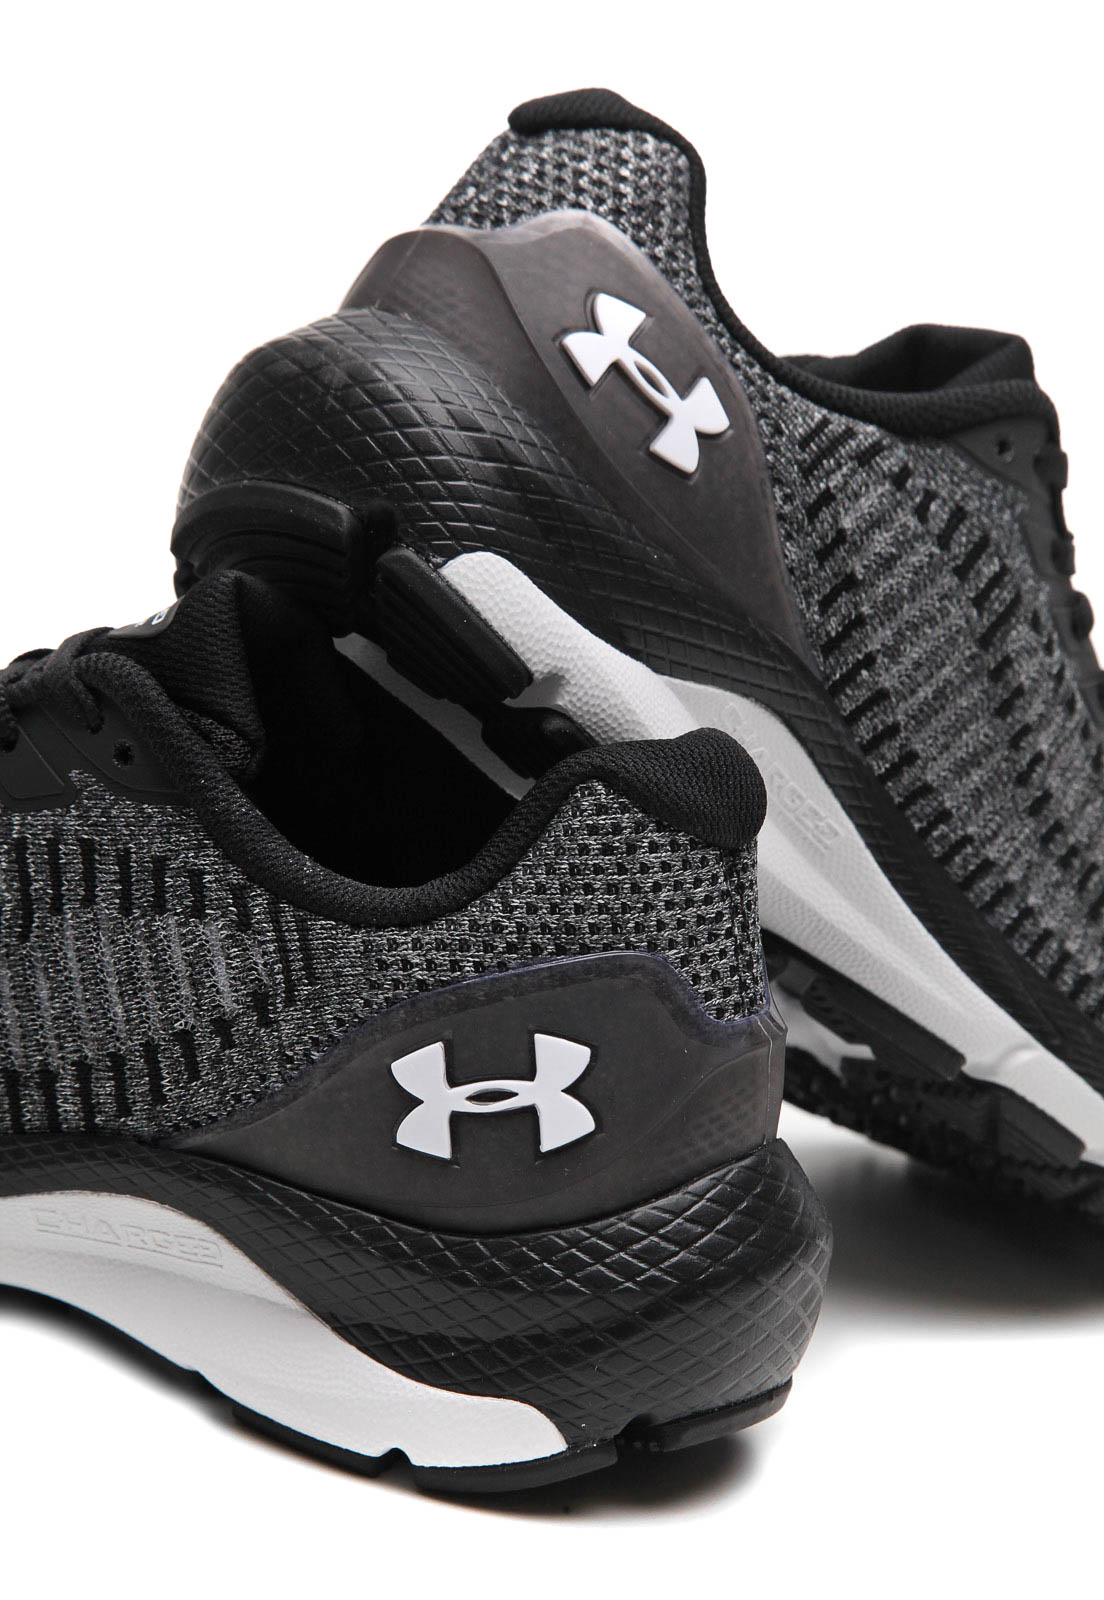 Tênis Under Armour Charged Skyline 2 Masculino Cinza e Preto